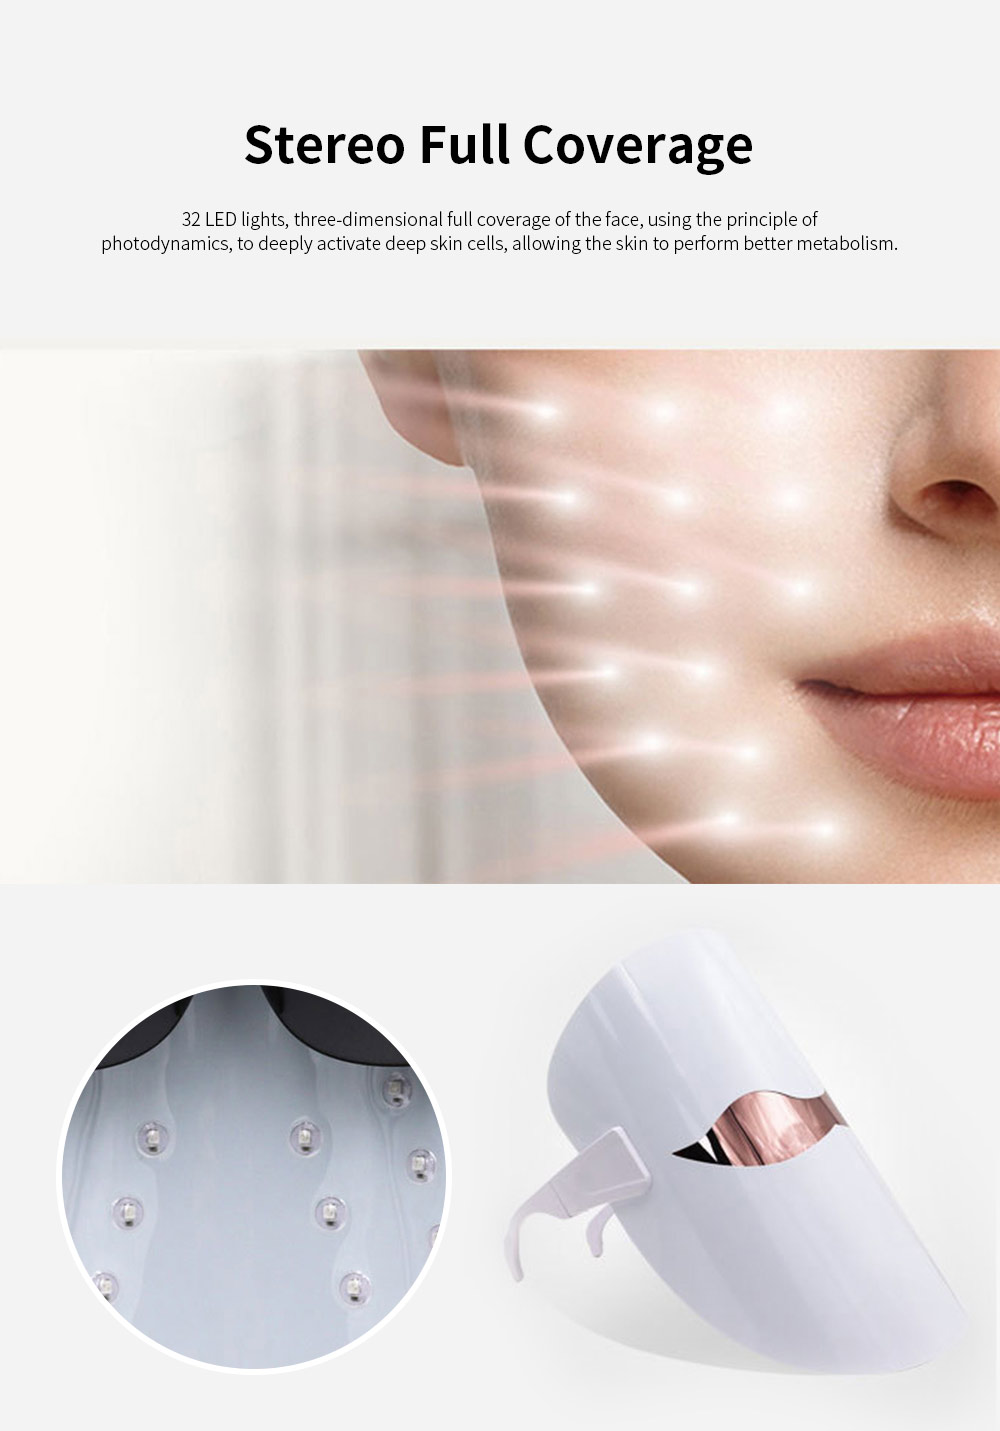 Spectrum Skin Care Mask 32 LED Face Mask with Triple Spectrum Technology for Skin Care Anti Aging Skin Tightening 3